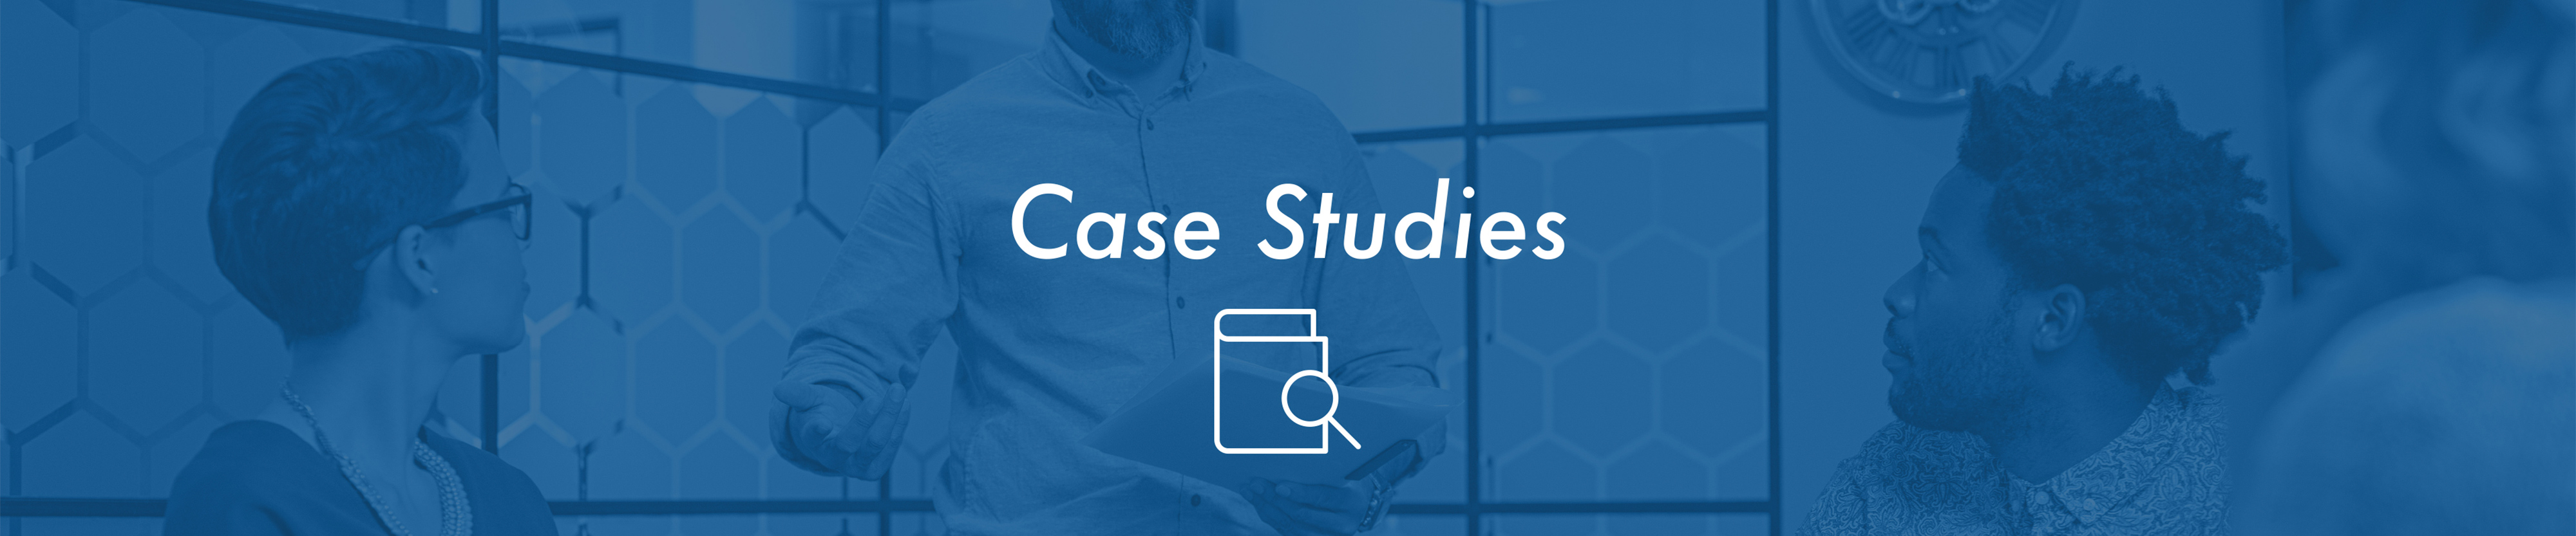 Advanced Analytics Group Case Studies